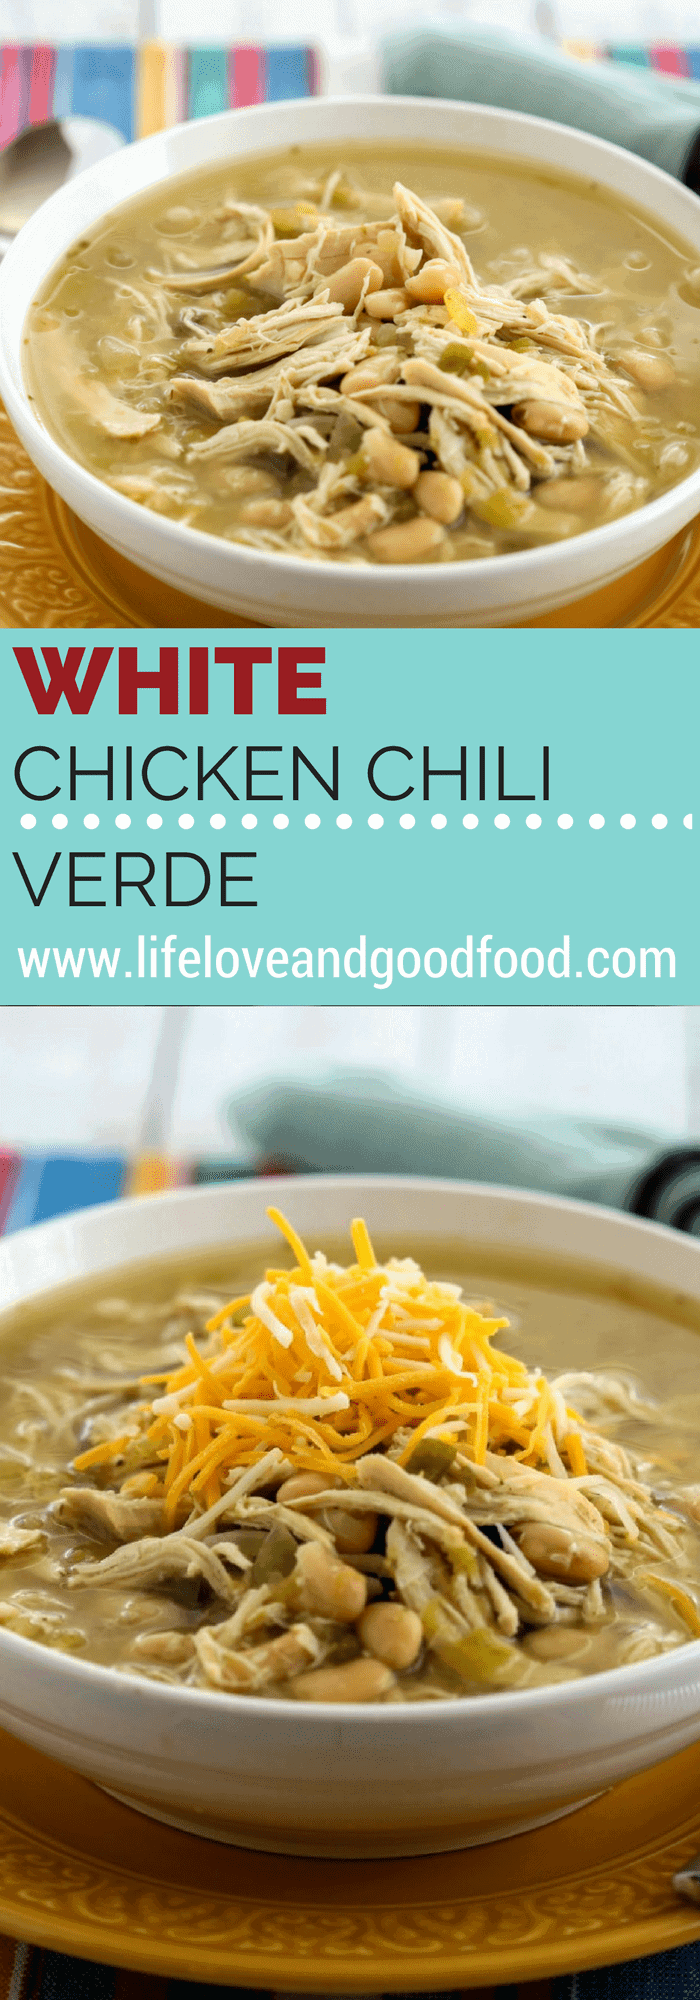 Live life with a little SPICE and this White Chicken Chili Verde! This chili simmers all day in a broth of tangy salsa verde, jalapeños, green chilies, and cumin.